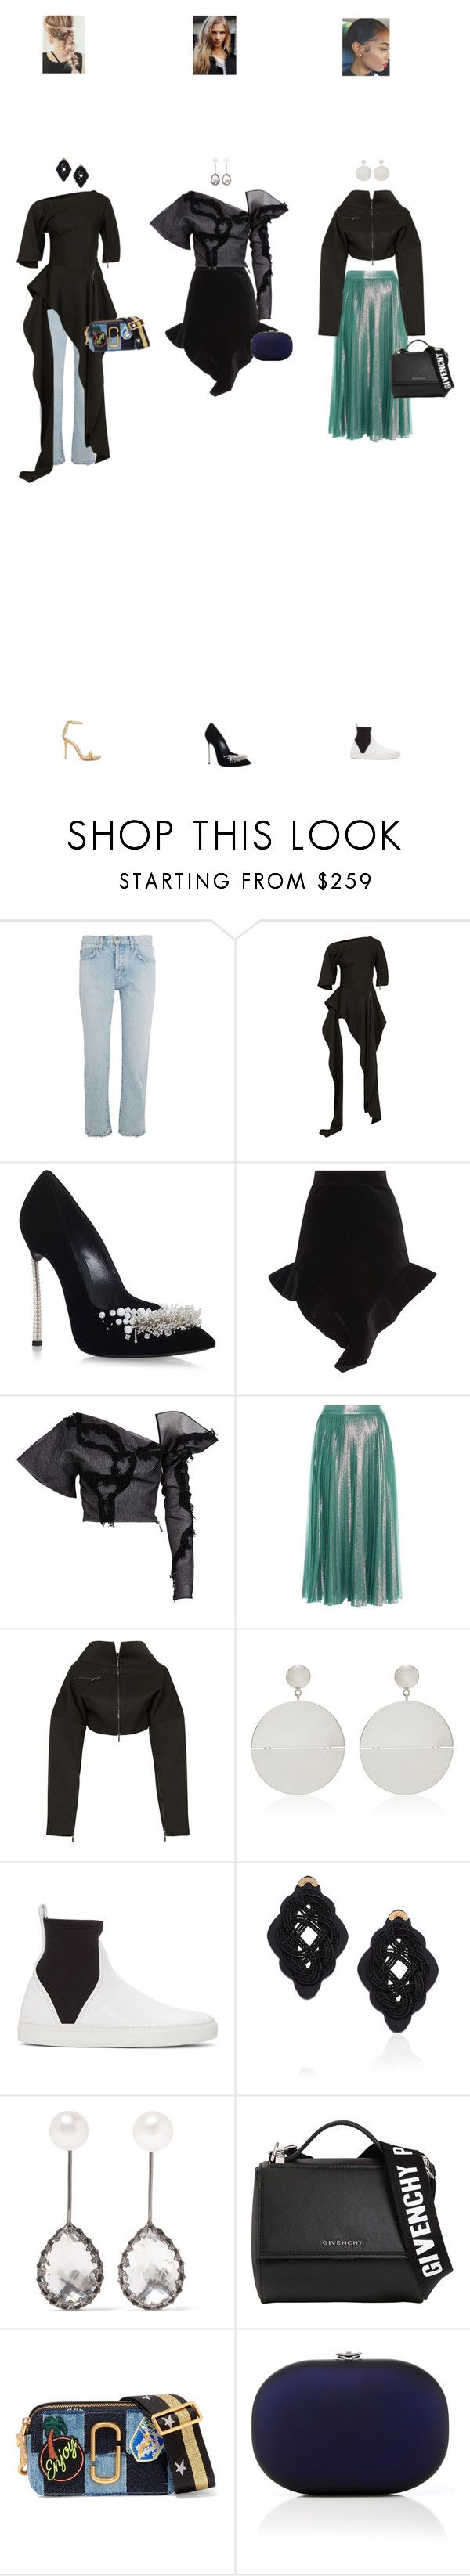 """Apr. 26, 2017"" by chocohearts08 ❤ liked on Polyvore featuring Current/Elliott, Maticevski, Casadei, Francesco Scognamiglio, Gucci, Agmes, Cédric Charlier, Anna e Alex, Larkspur & Hawk and Givenchy"